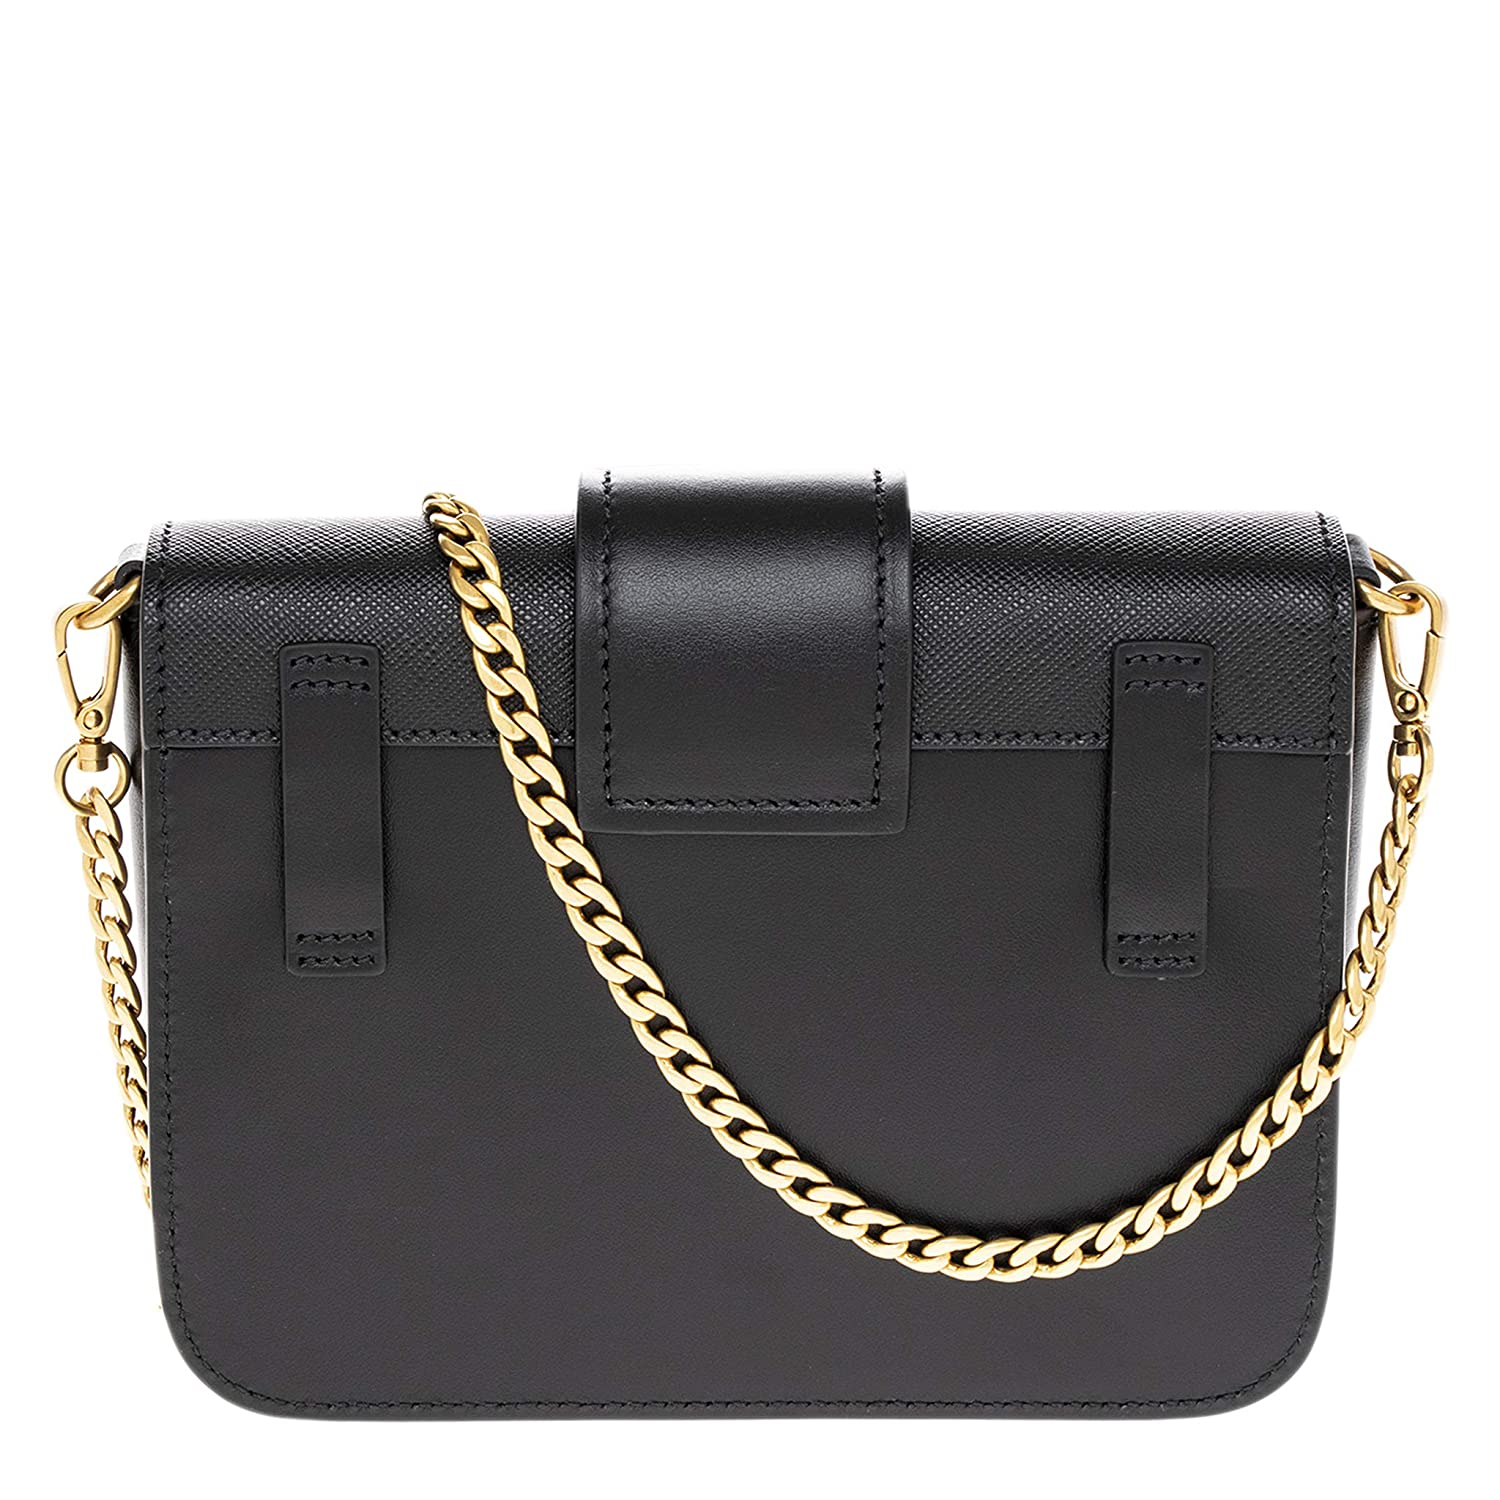 39902616 Amazon.com: Prada Black Cahier Calf Leather Belt Bag with Chain ...